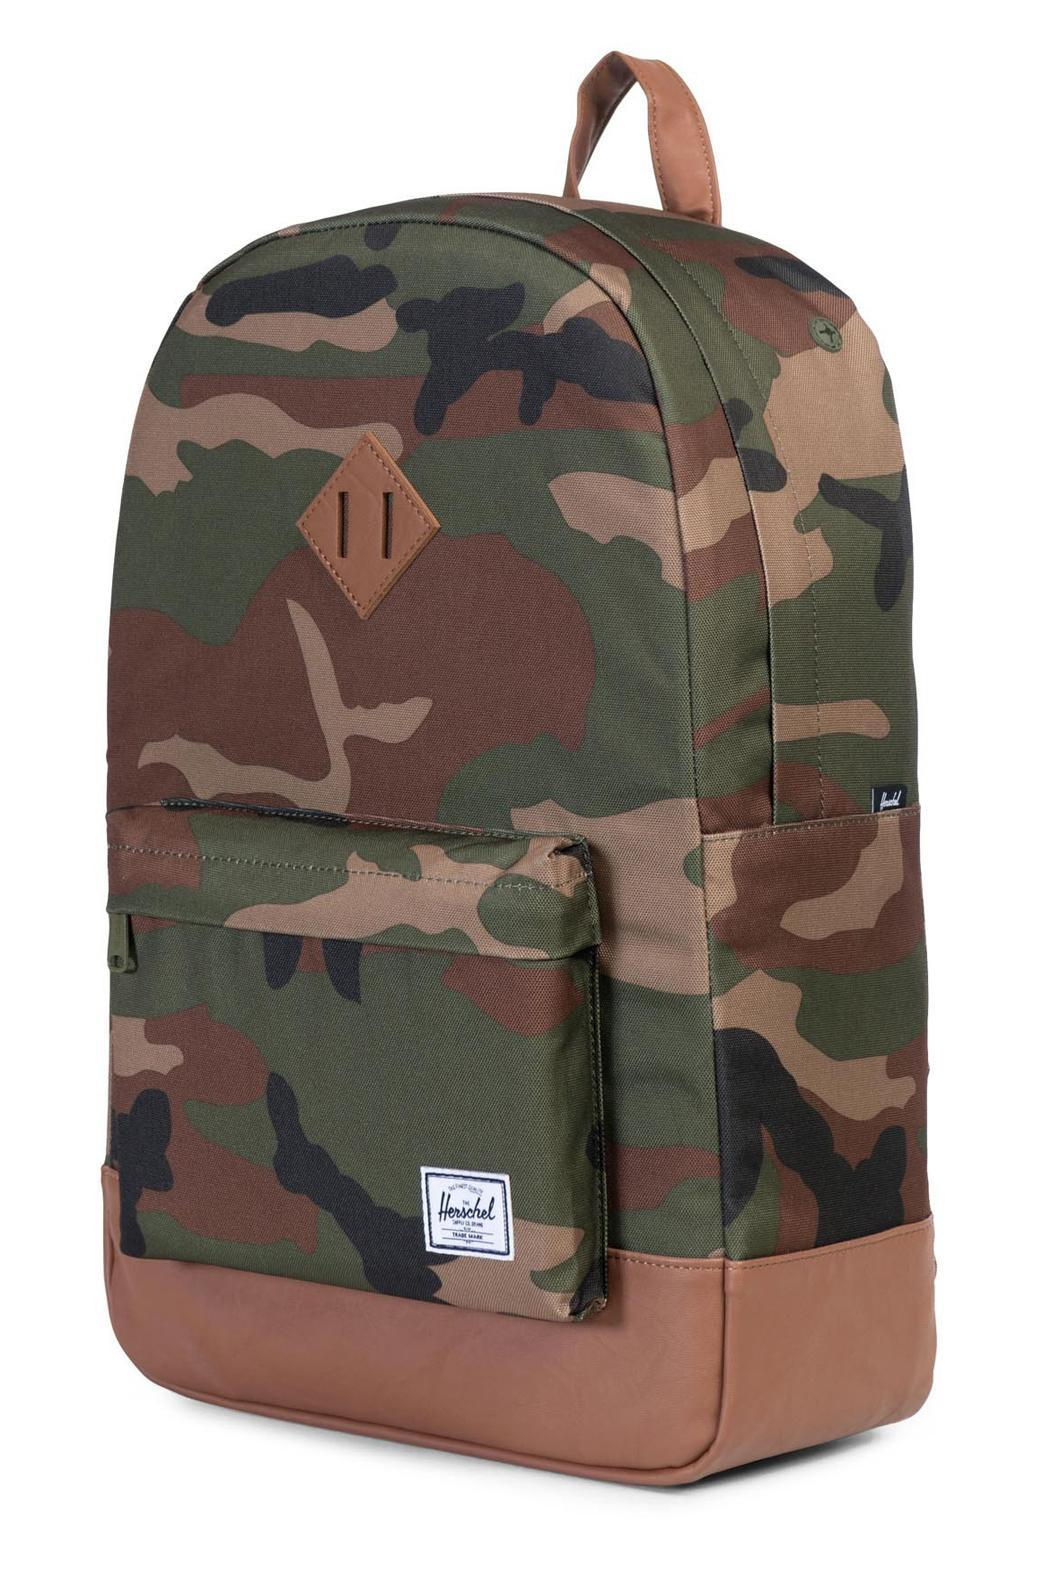 286e625c166 Herschel Supply Co. Herschel Heritage Backpack from Pennsylvania by ...